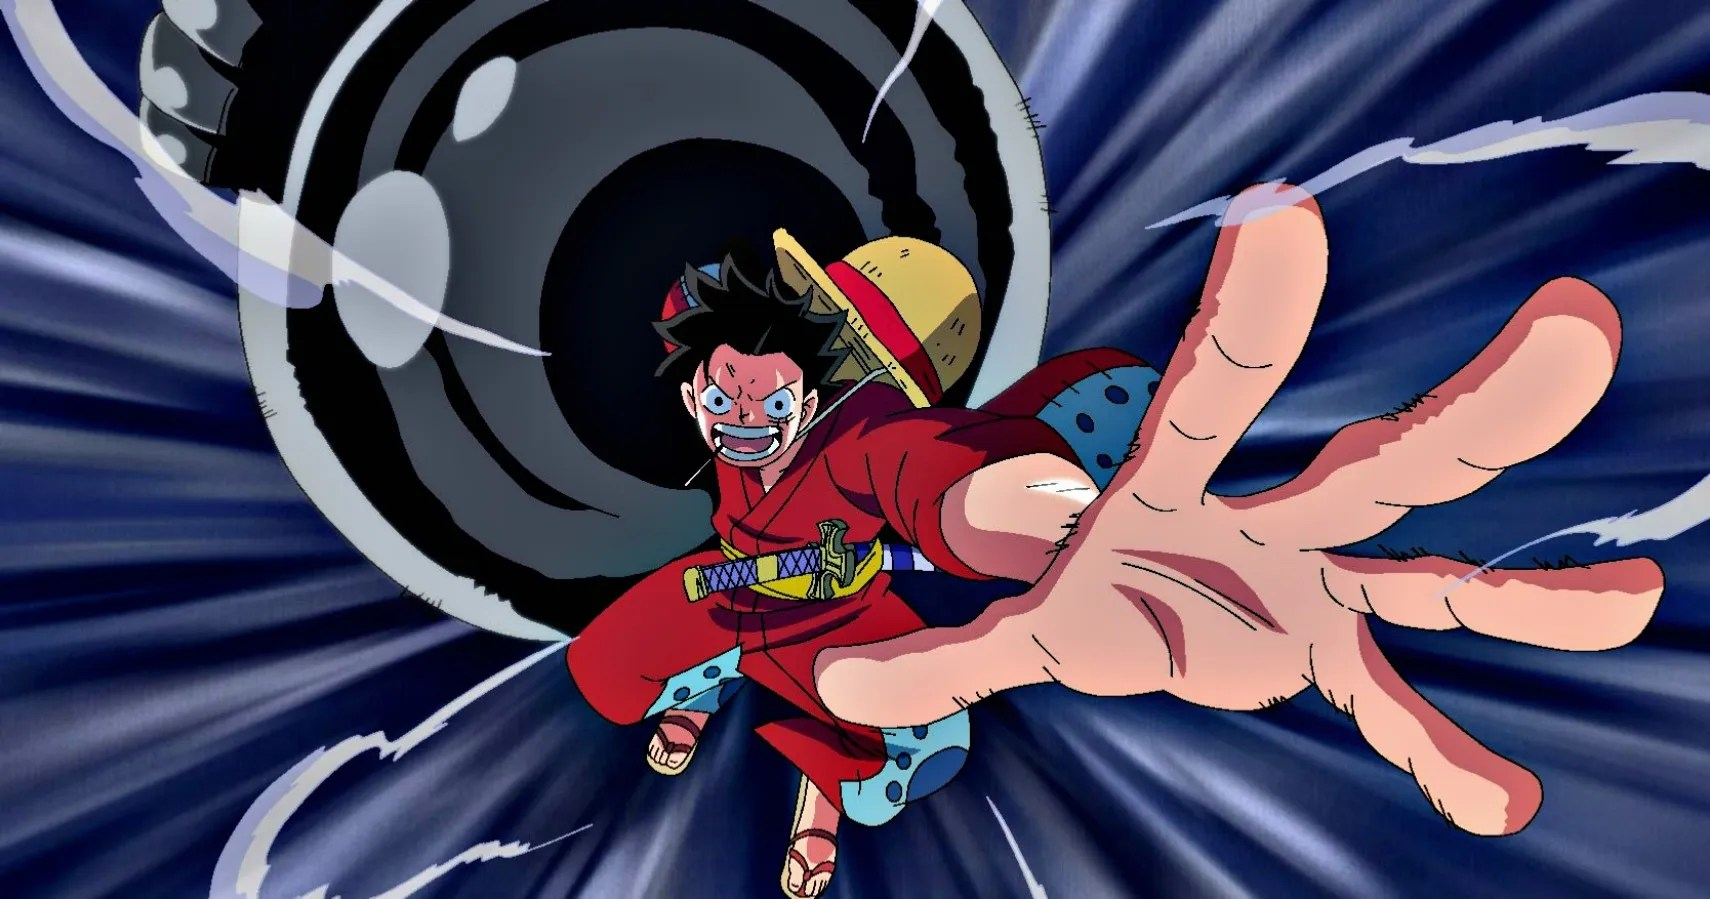 10/04/2021· what episode does luffy use gear 1 for the first time? One Piece 10 Facts Everyone Should Know About Gear Third Cbr